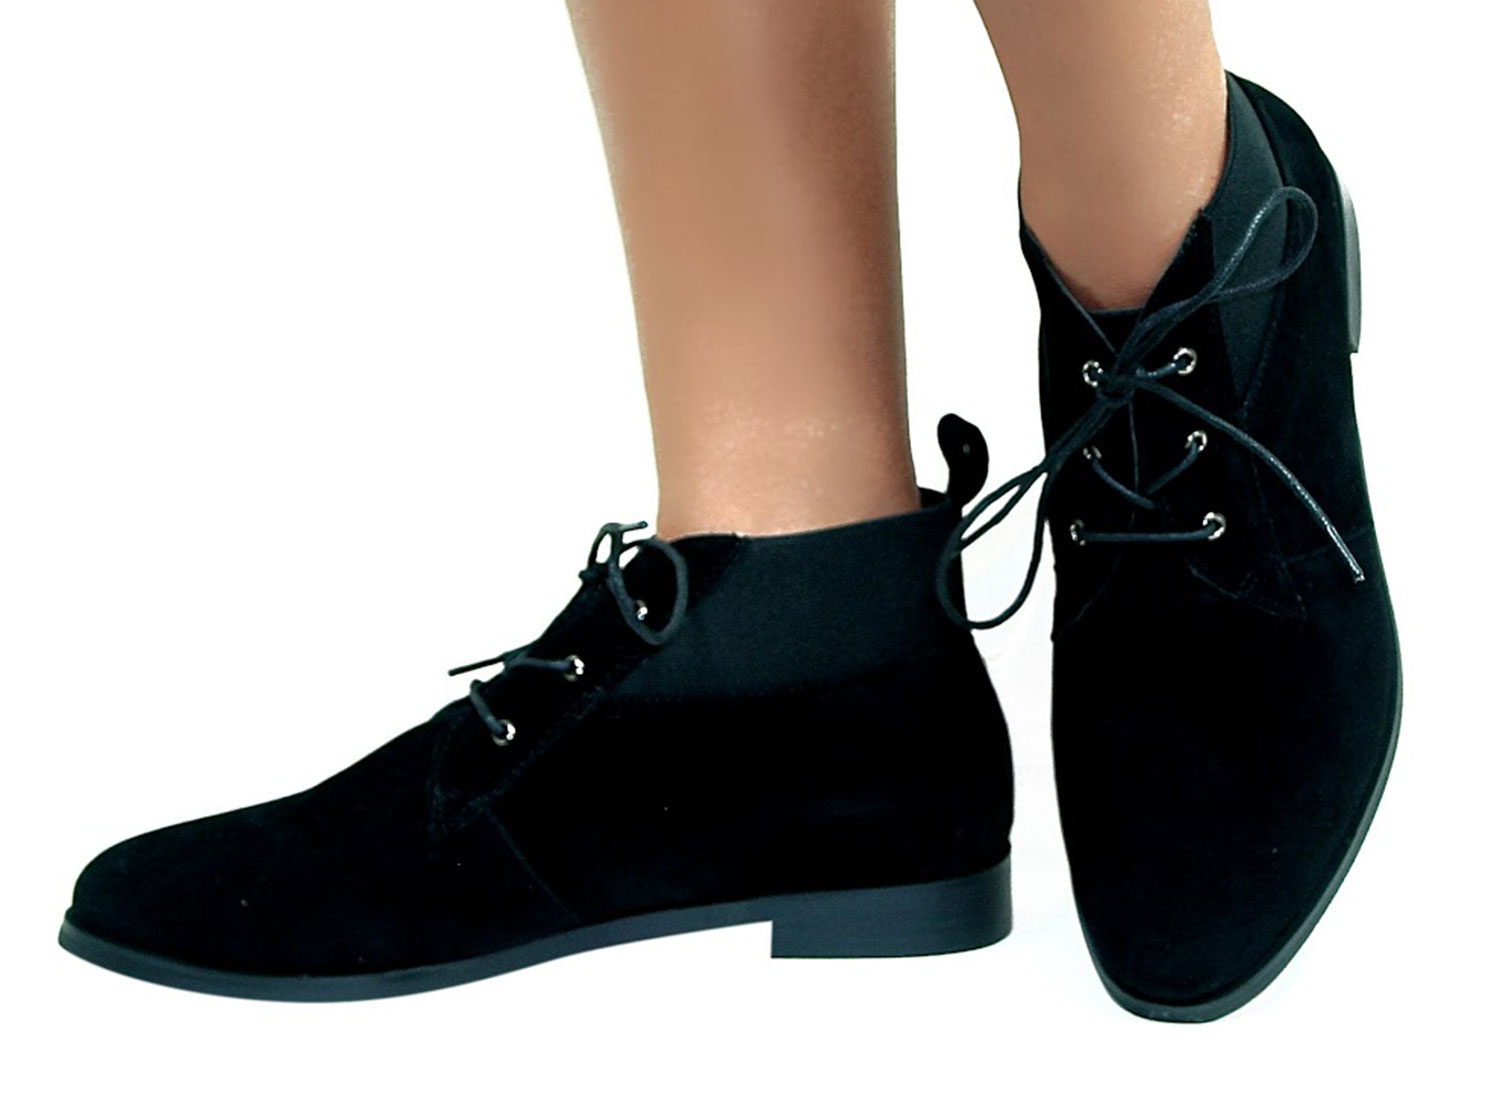 Ladies Womens Vintage Lace Up Ankle Low Heel Pixie Flat Chelsea ...